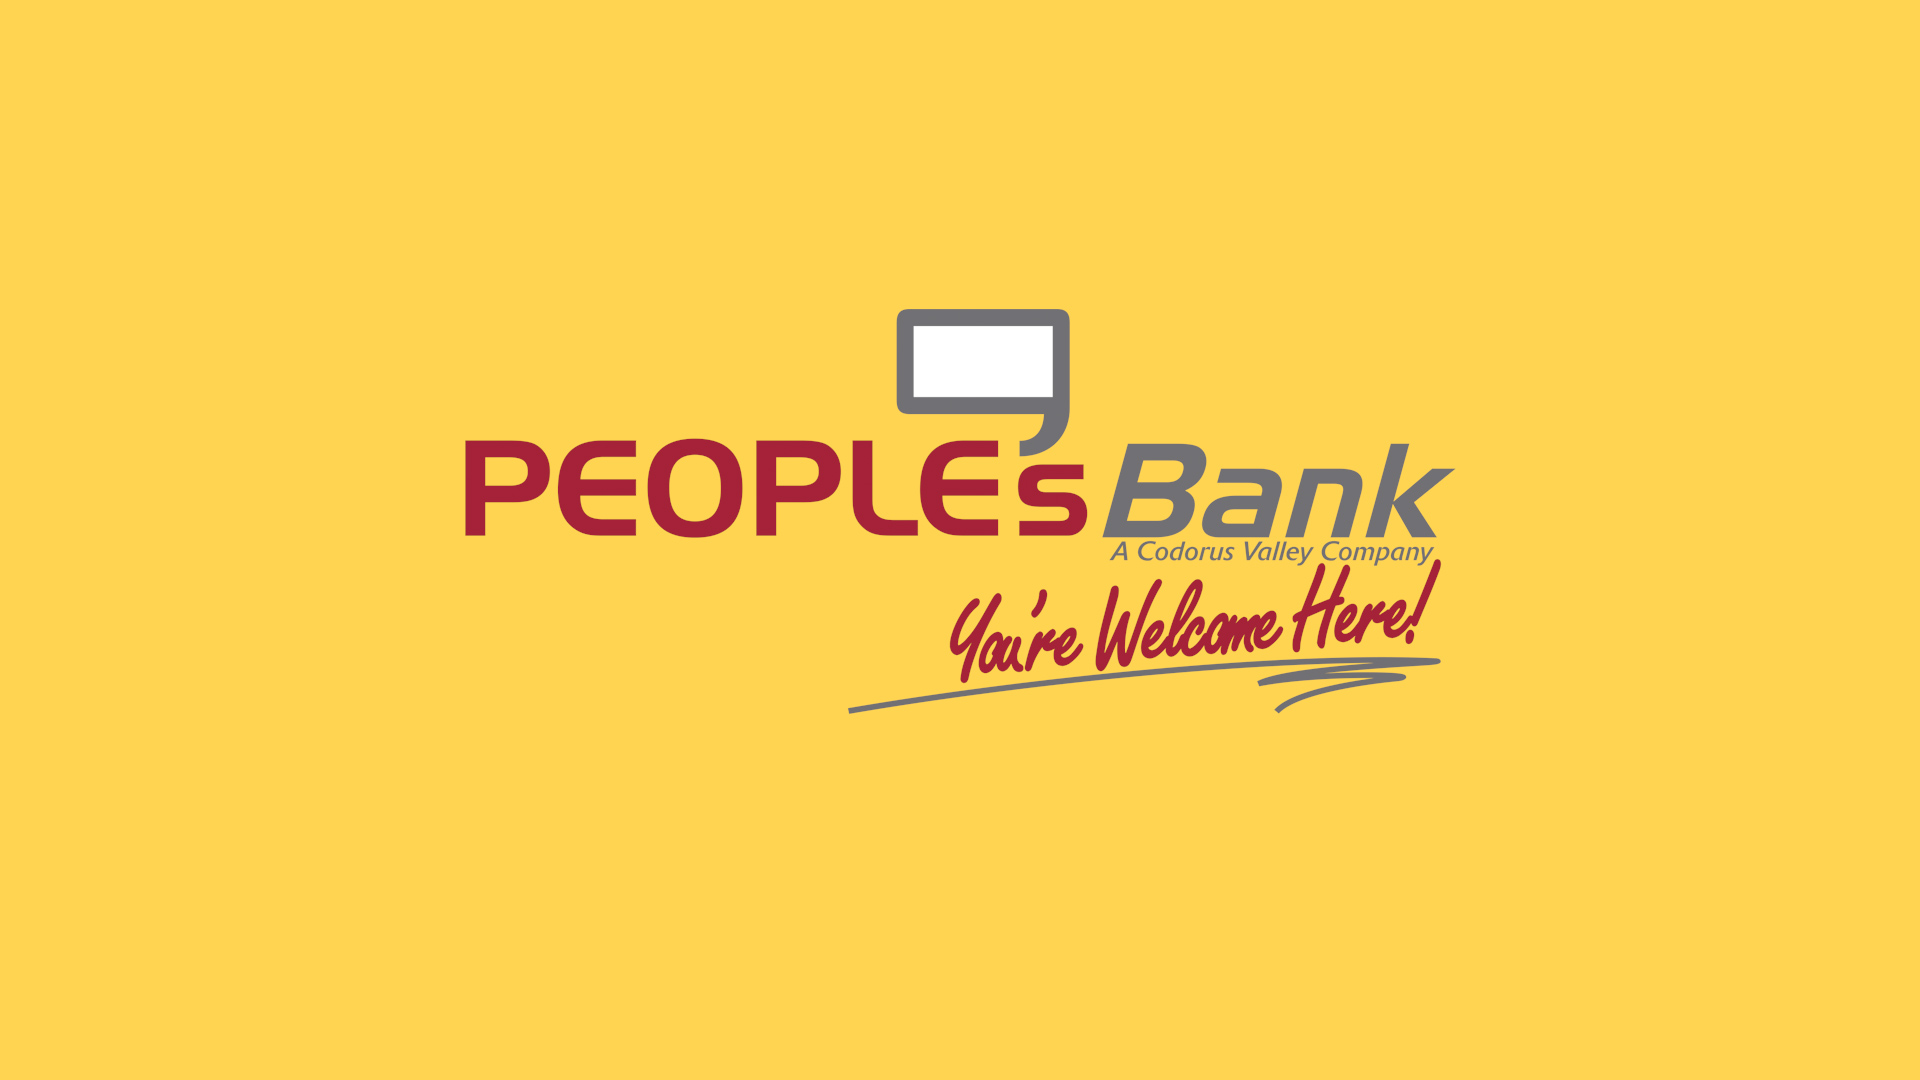 Peoples's Bank CEO Welcome Video